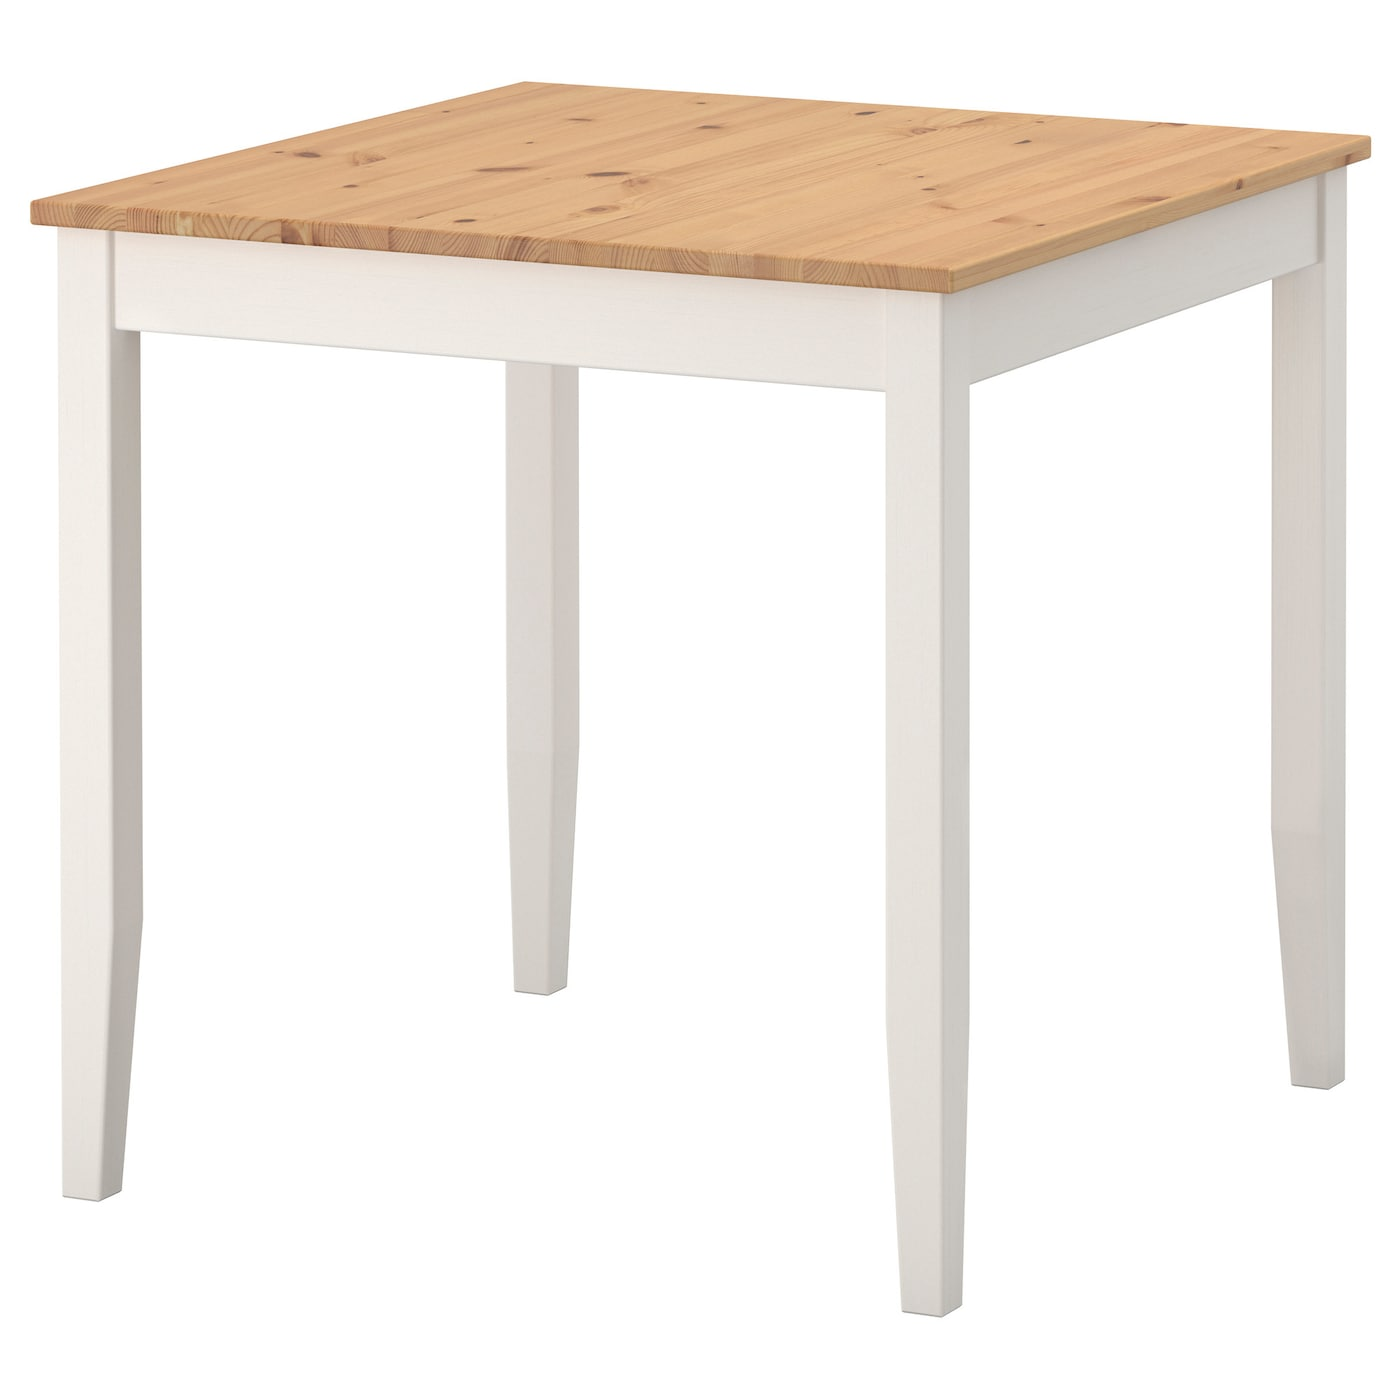 Table salle manger ikea for Ikea table 9 99